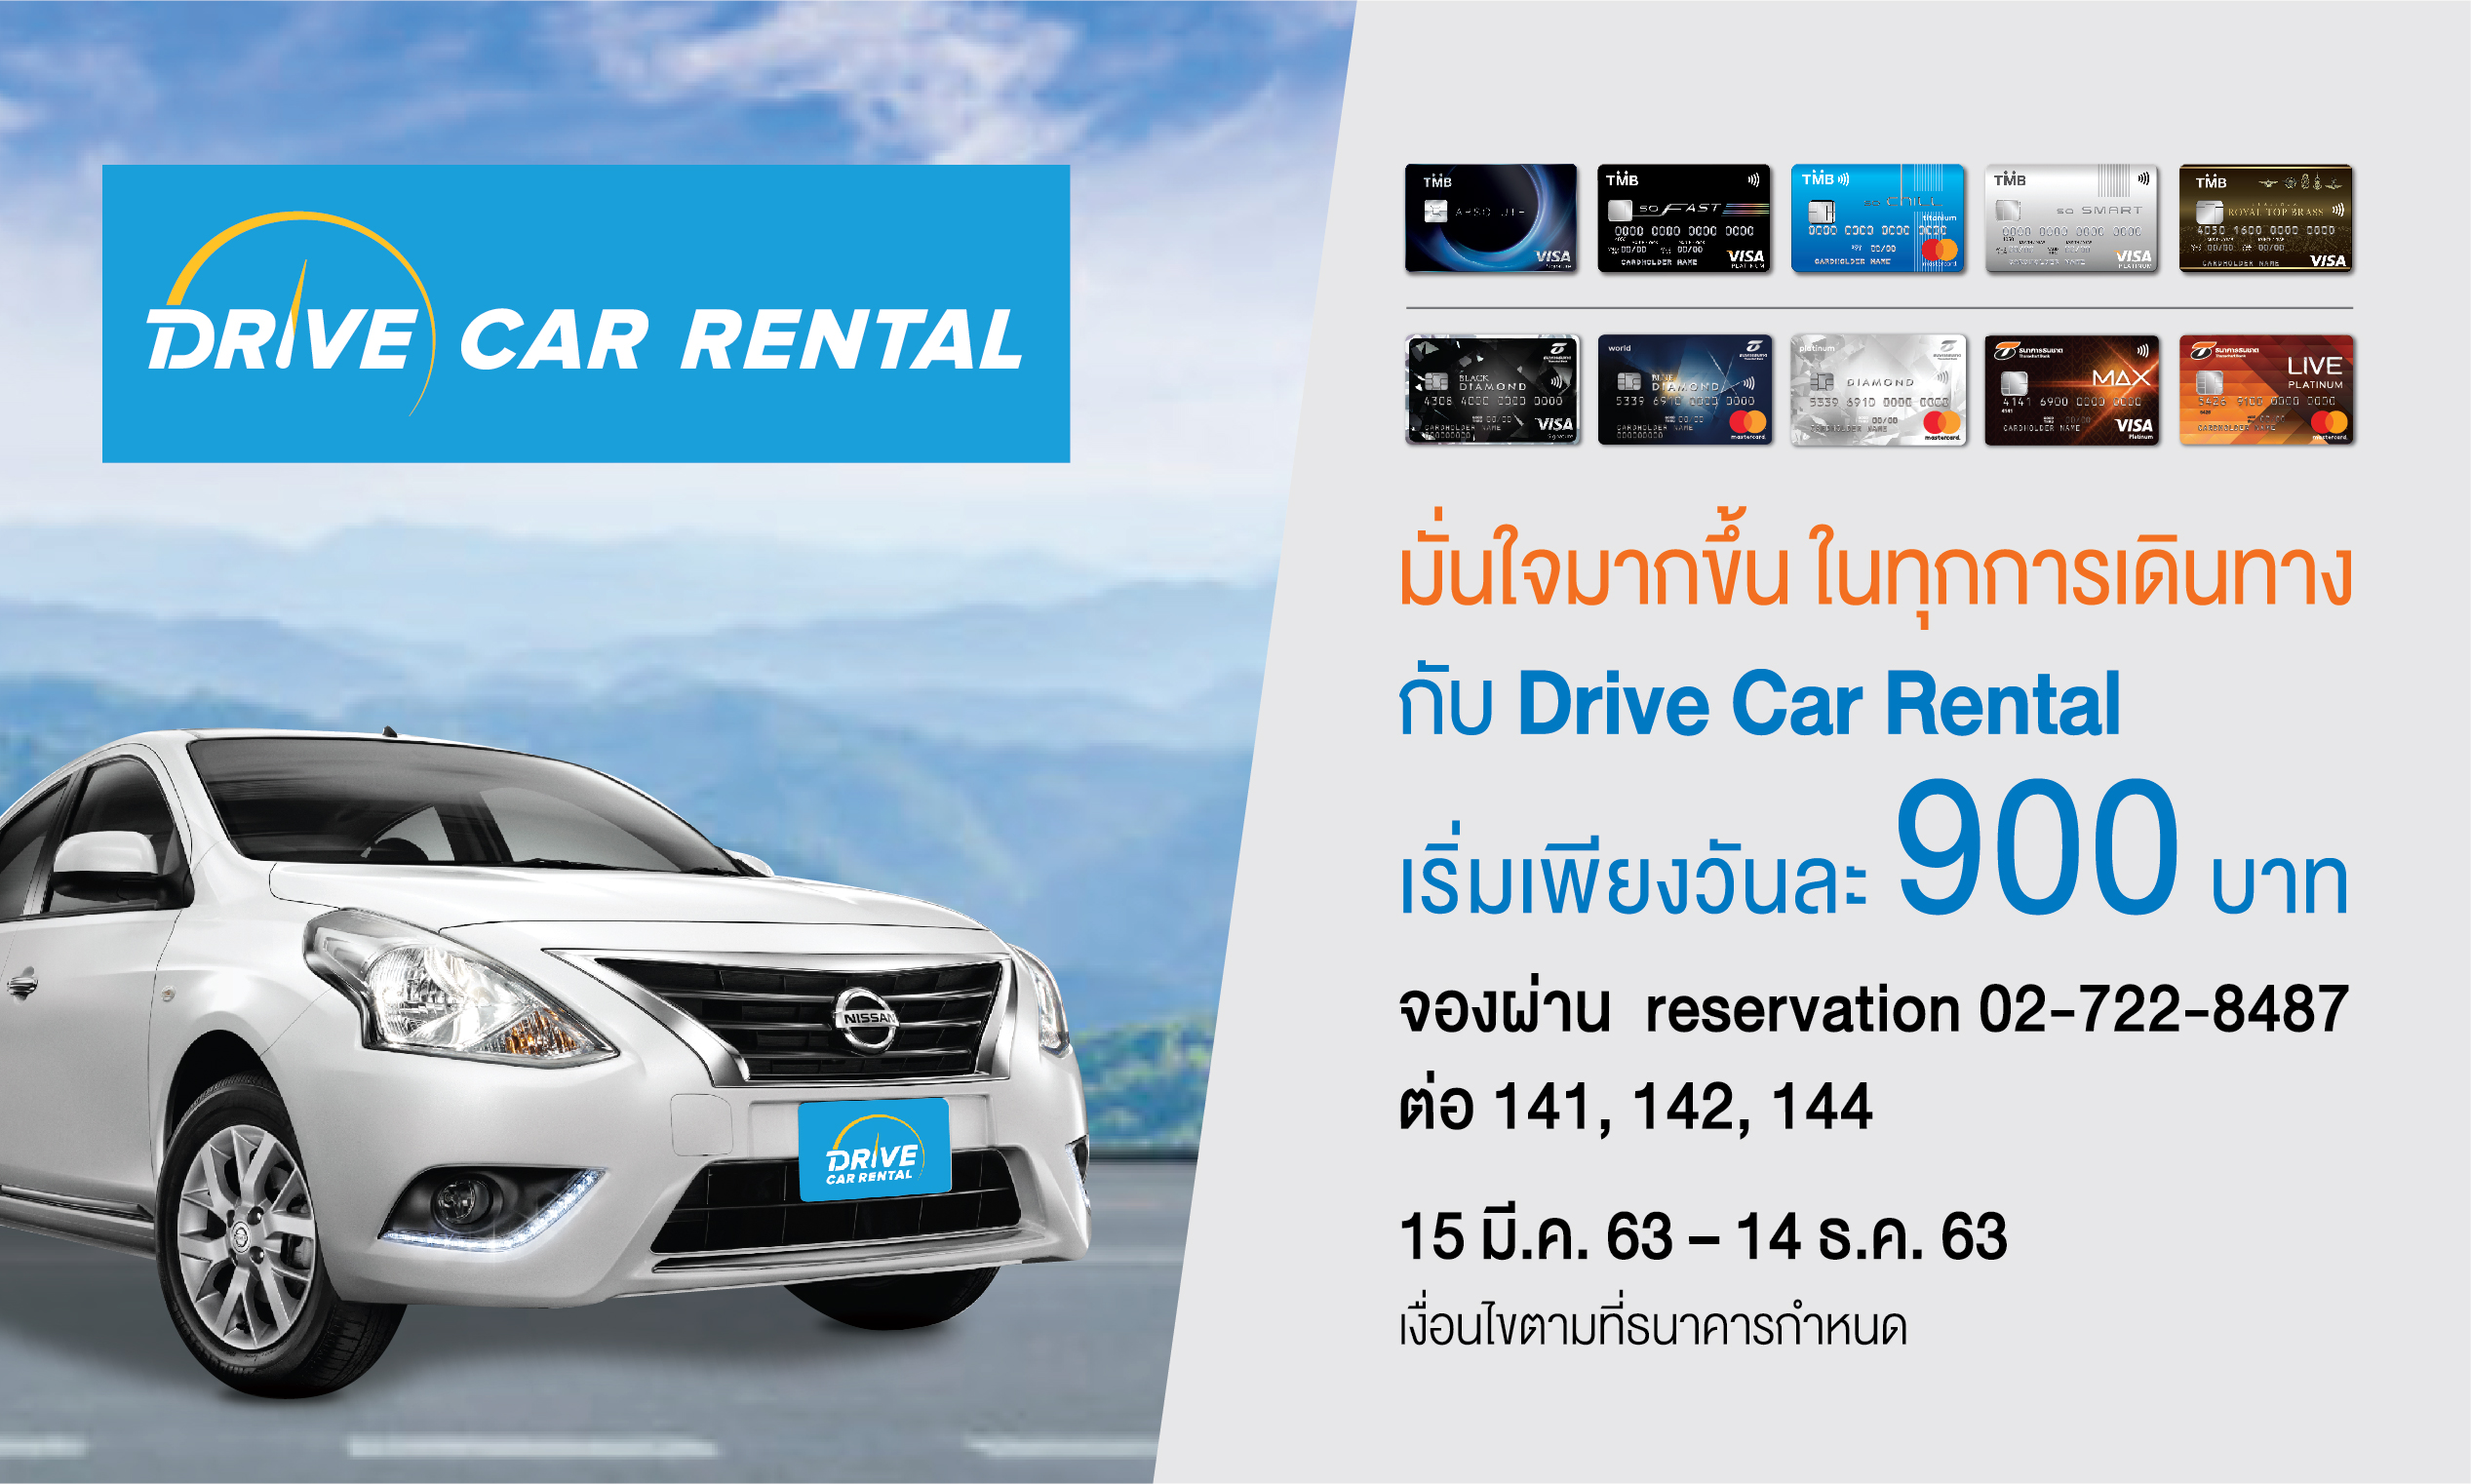 TMB-Creditcard-Promorion-with-Drive-Car-Rental-Thailand-2020